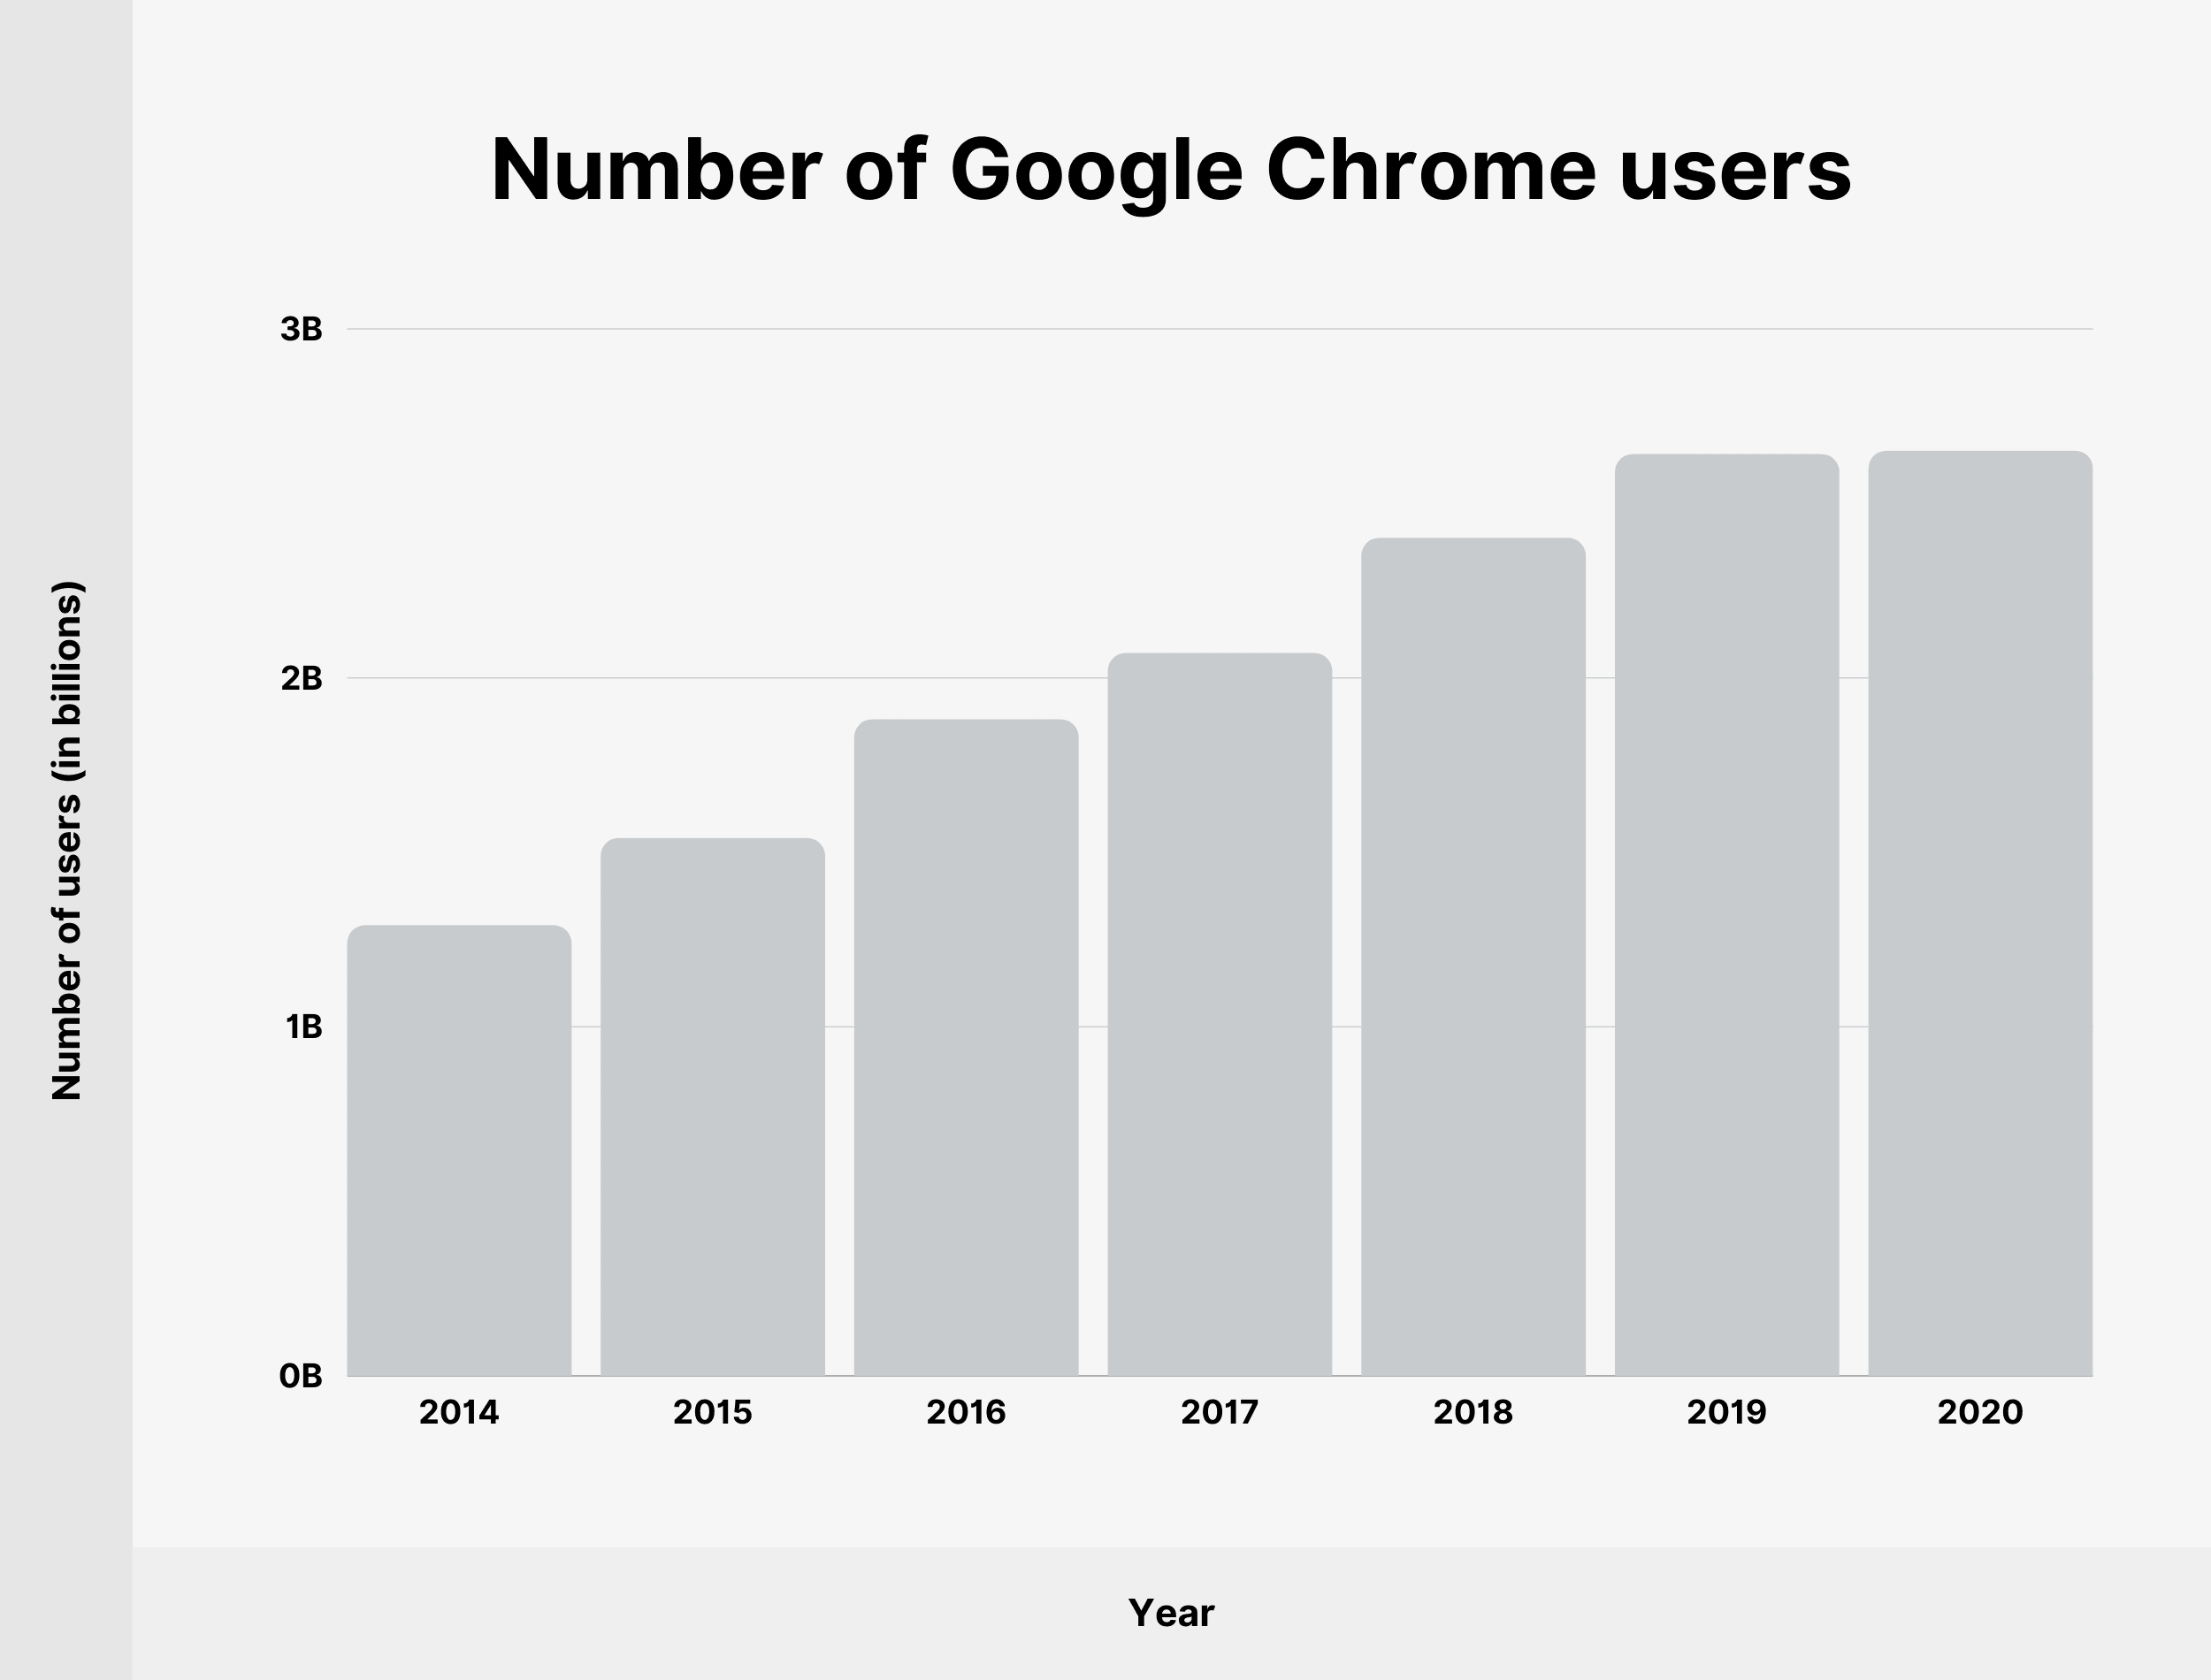 Number of Google Chrome users